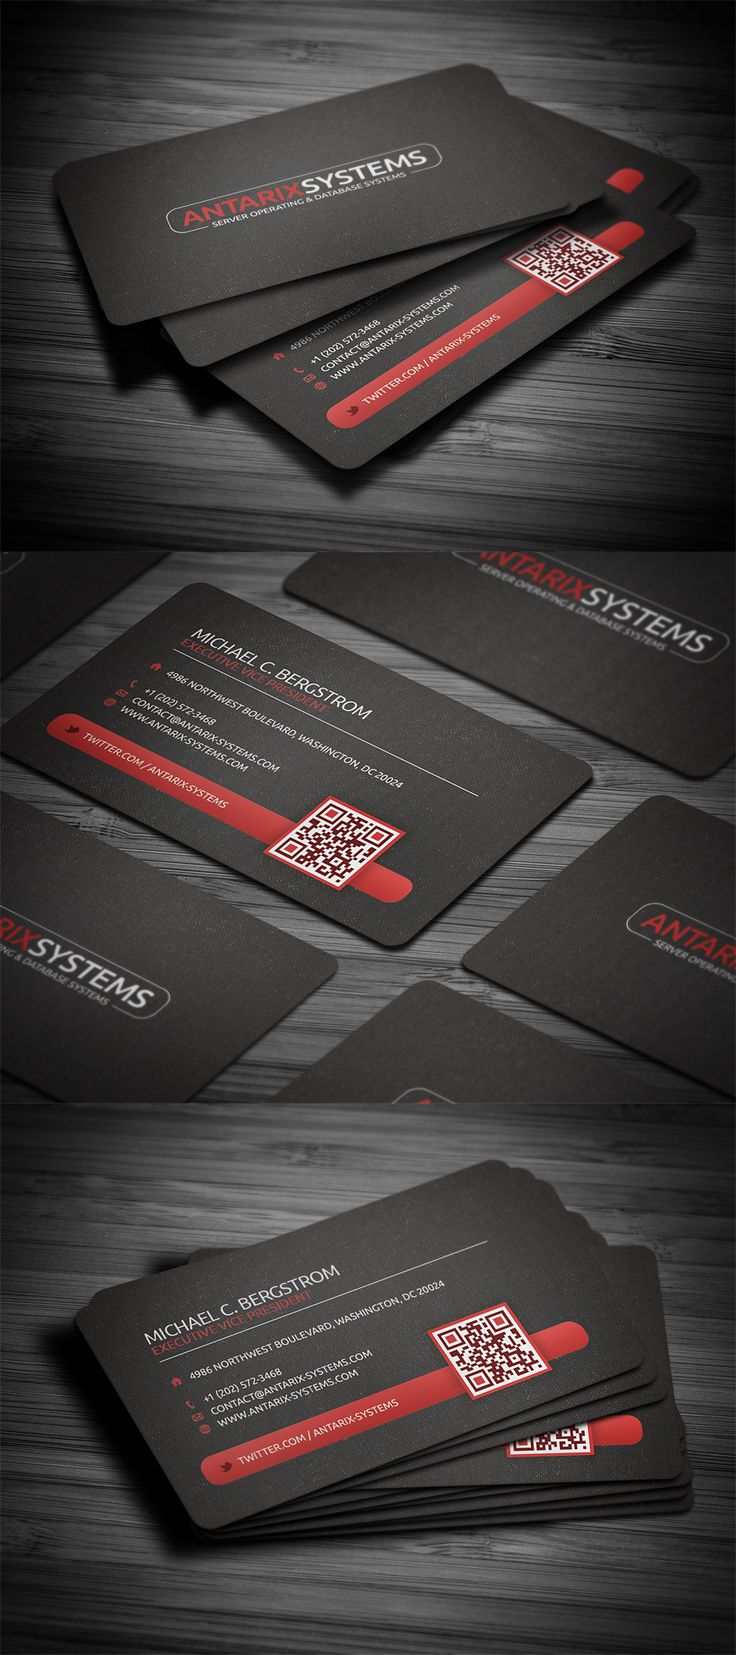 121 best business card ideas images on pinterest presentation 121 best business card ideas images on pinterest presentation cards business cards and card ideas magicingreecefo Choice Image